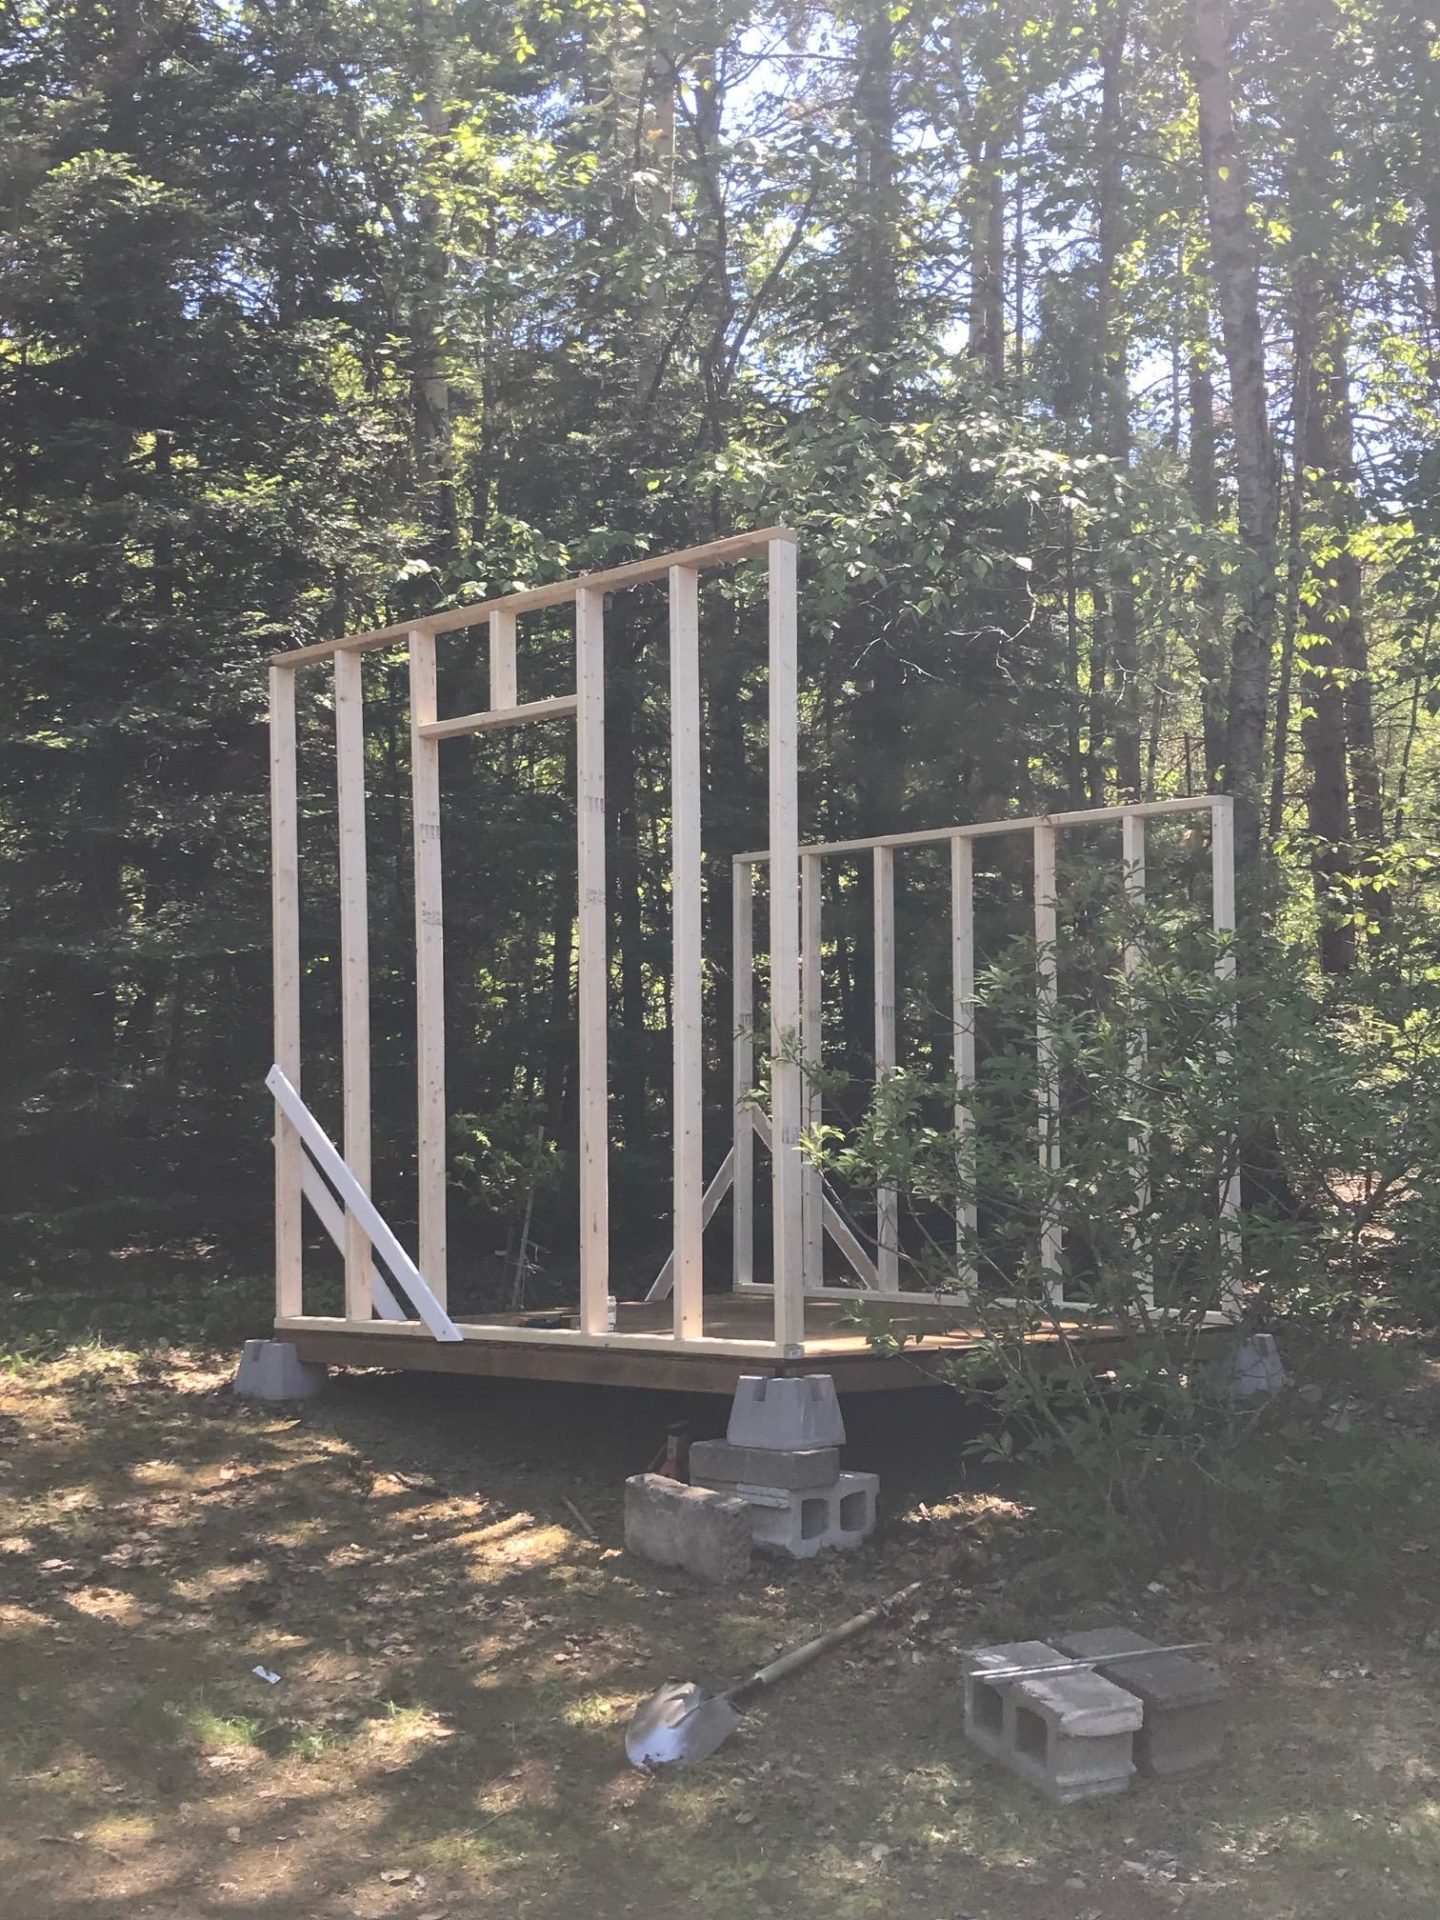 Raising Walls for Chicken Coop